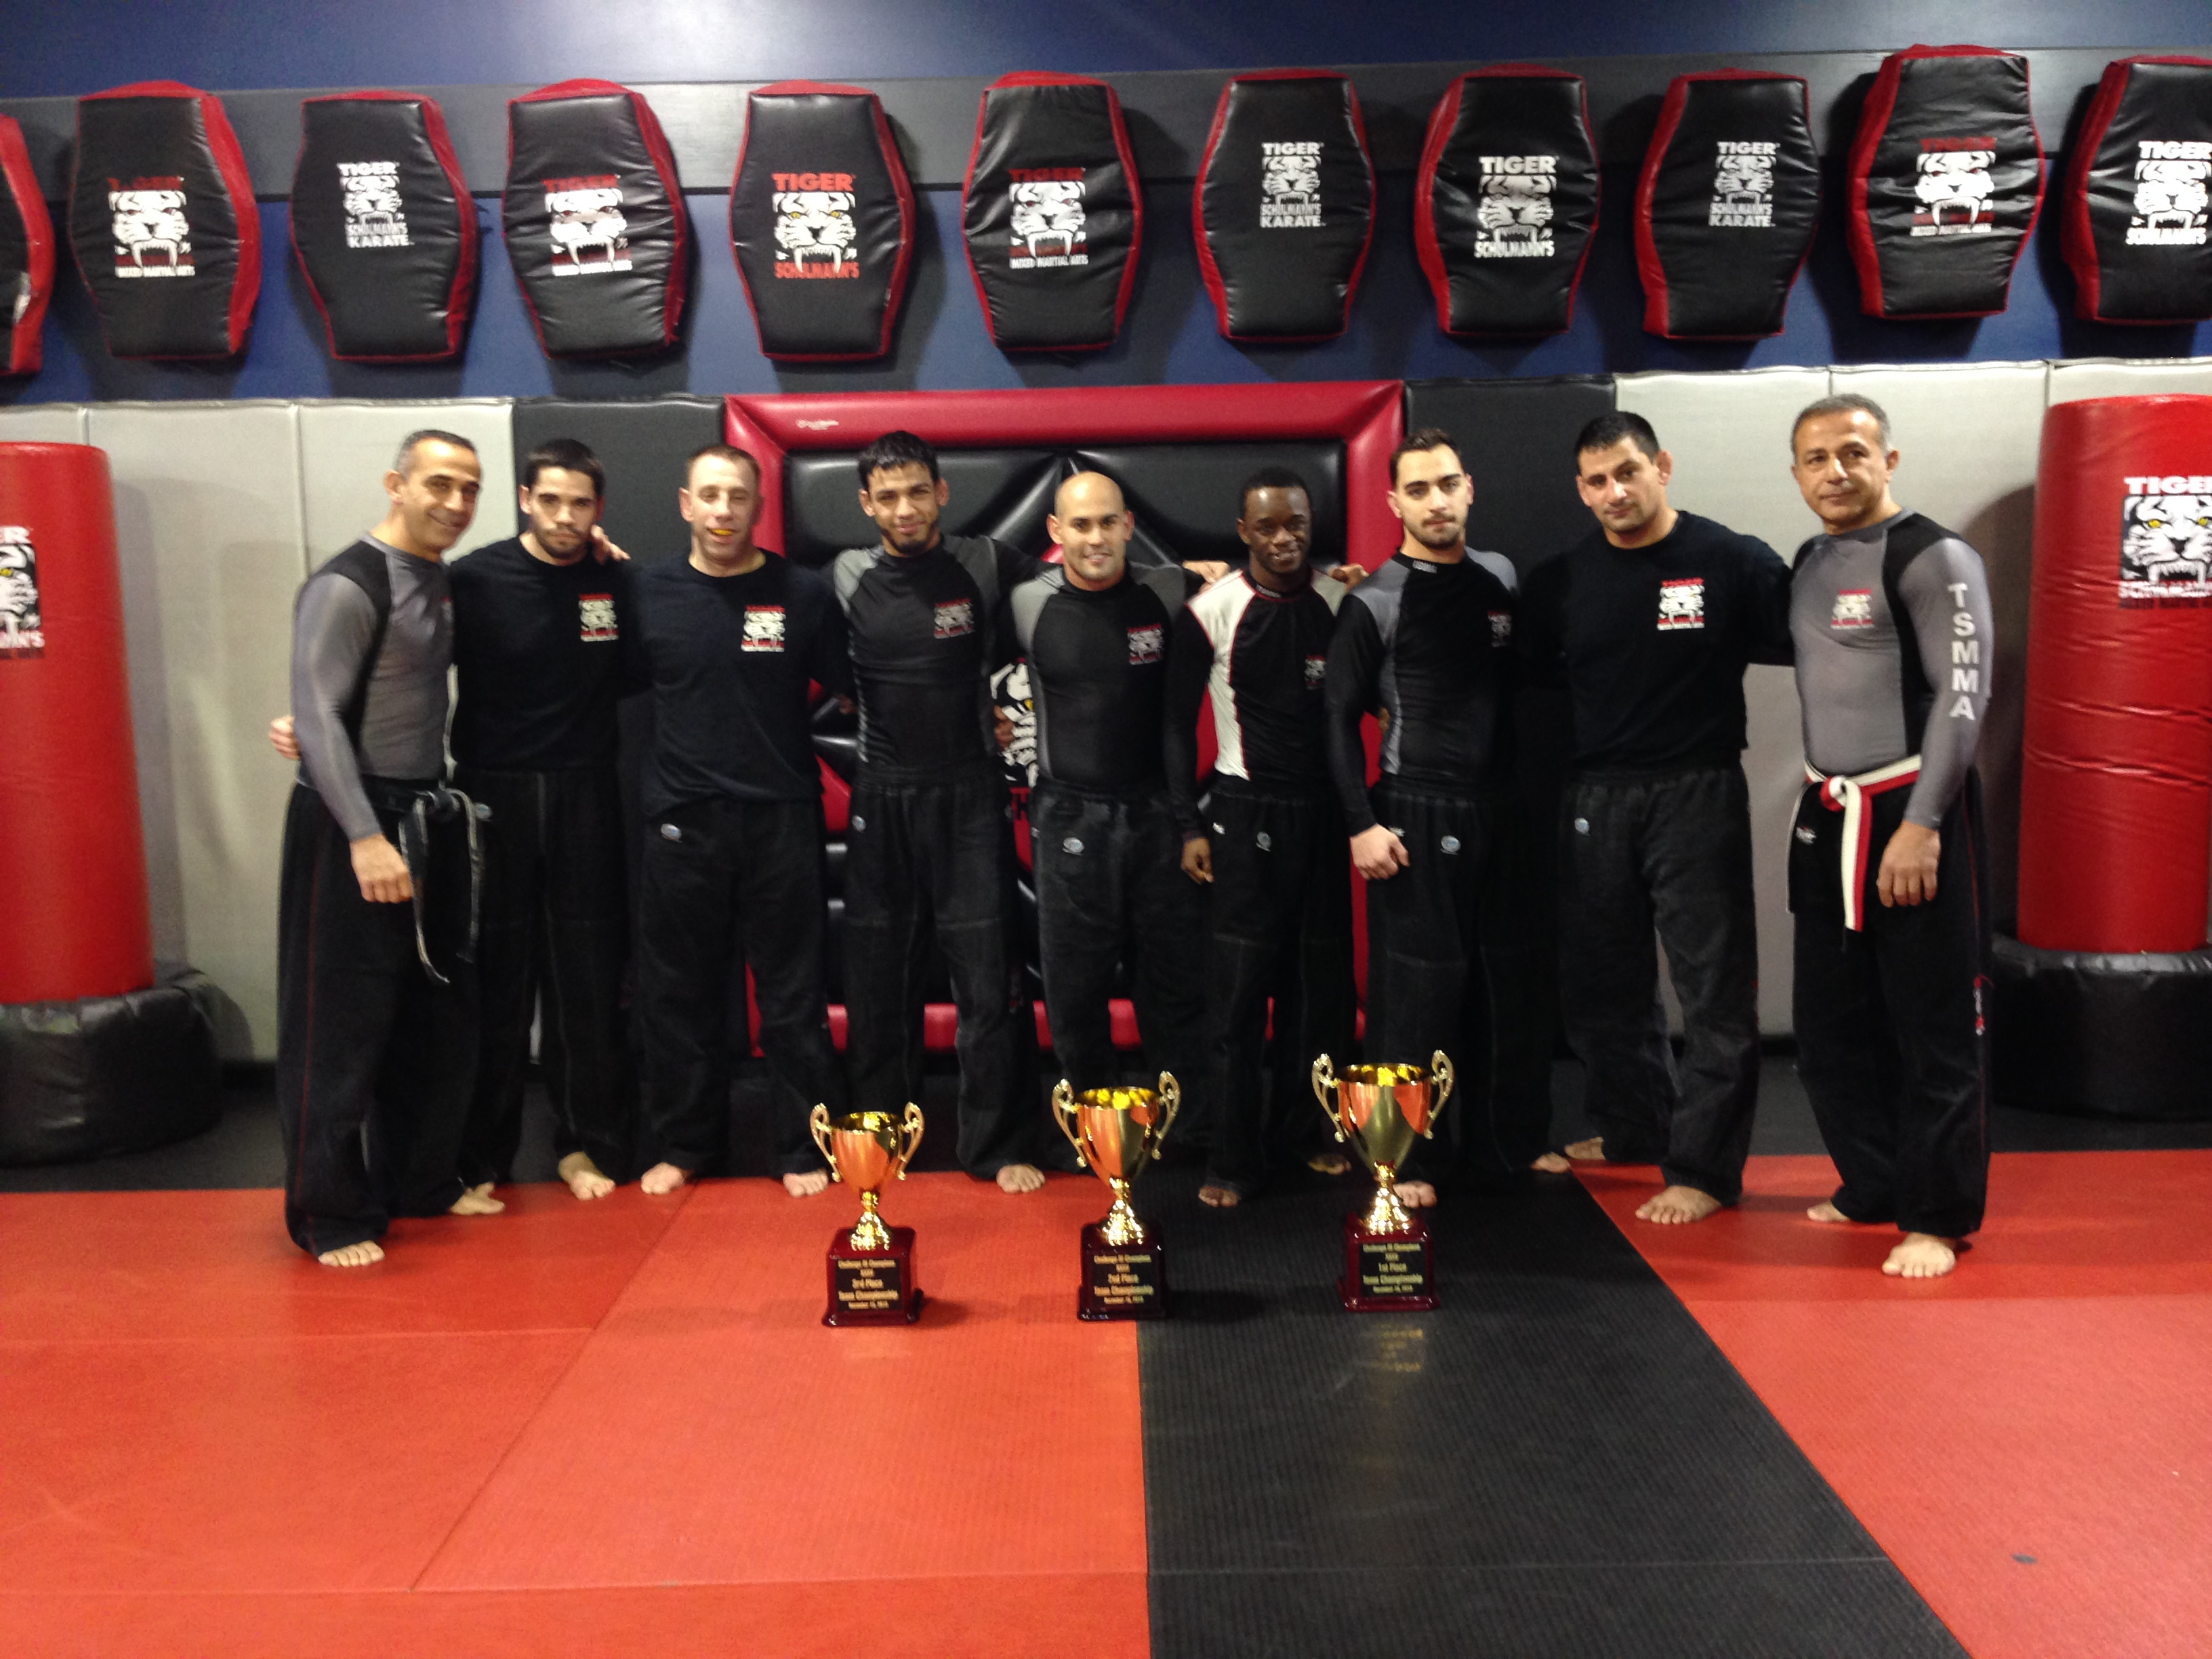 Tiger Schulmann's Martial Arts | Group Photo Of Men With Trophies